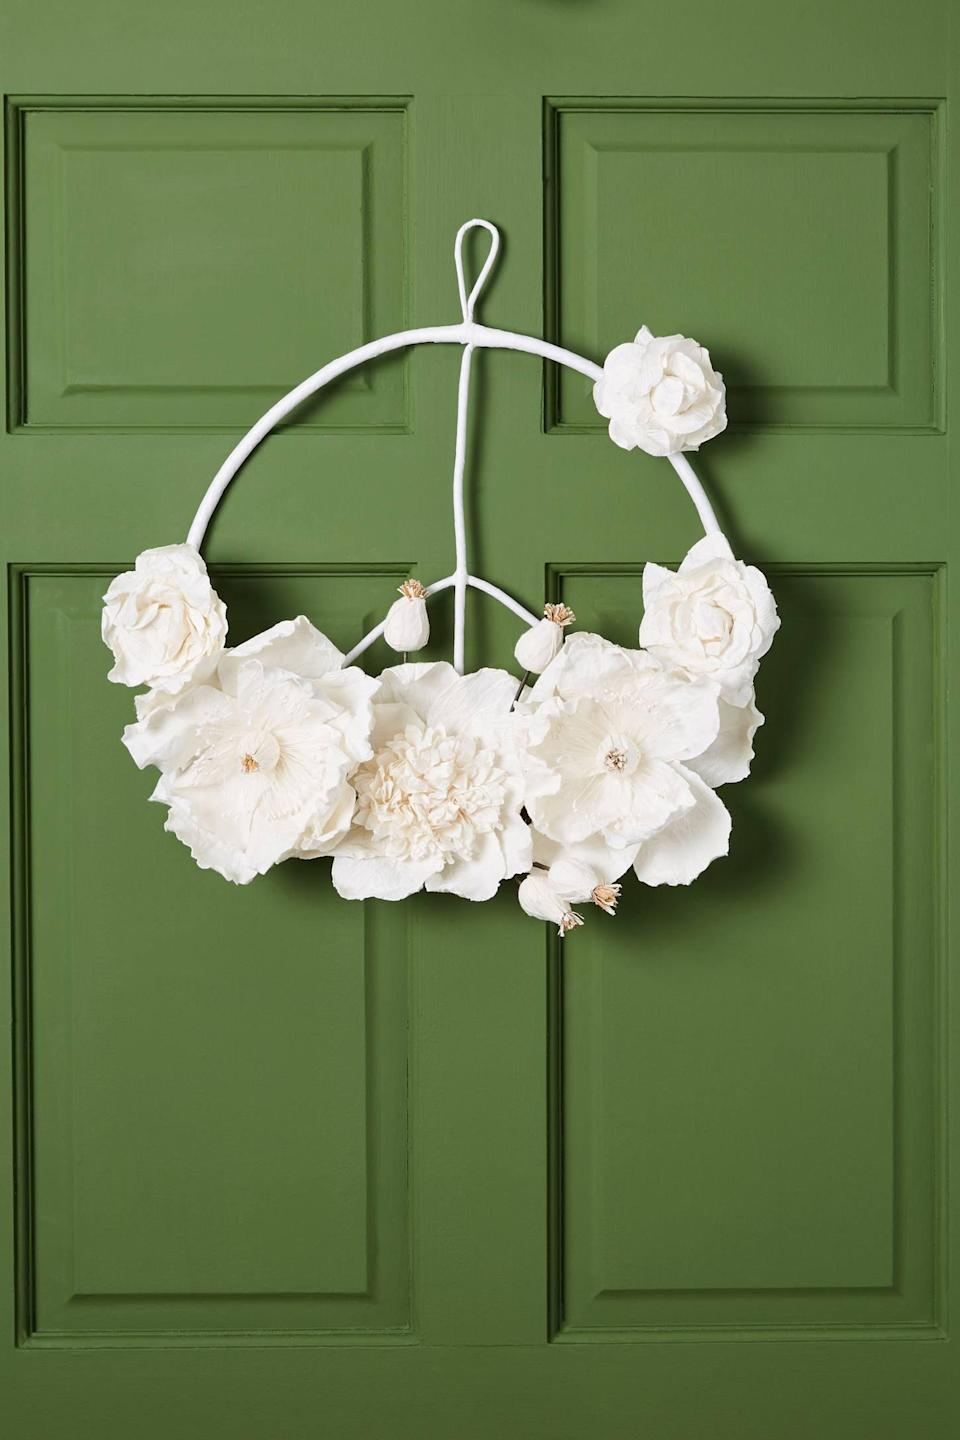 """<p>Give guests a warm welcome with the <a href=""""https://www.popsugar.com/buy/Peace-Sign-Wreath-490520?p_name=Peace%20Sign%20Wreath&retailer=anthropologie.com&pid=490520&price=68&evar1=casa%3Aus&evar9=46615300&evar98=https%3A%2F%2Fwww.popsugar.com%2Fhome%2Fphoto-gallery%2F46615300%2Fimage%2F46615390%2FPeace-Sign-Wreath&list1=shopping%2Canthropologie%2Choliday%2Cchristmas%2Cchristmas%20decorations%2Choliday%20decor%2Chome%20shopping&prop13=mobile&pdata=1"""" rel=""""nofollow noopener"""" class=""""link rapid-noclick-resp"""" target=""""_blank"""" data-ylk=""""slk:Peace Sign Wreath"""">Peace Sign Wreath</a> ($68).</p>"""